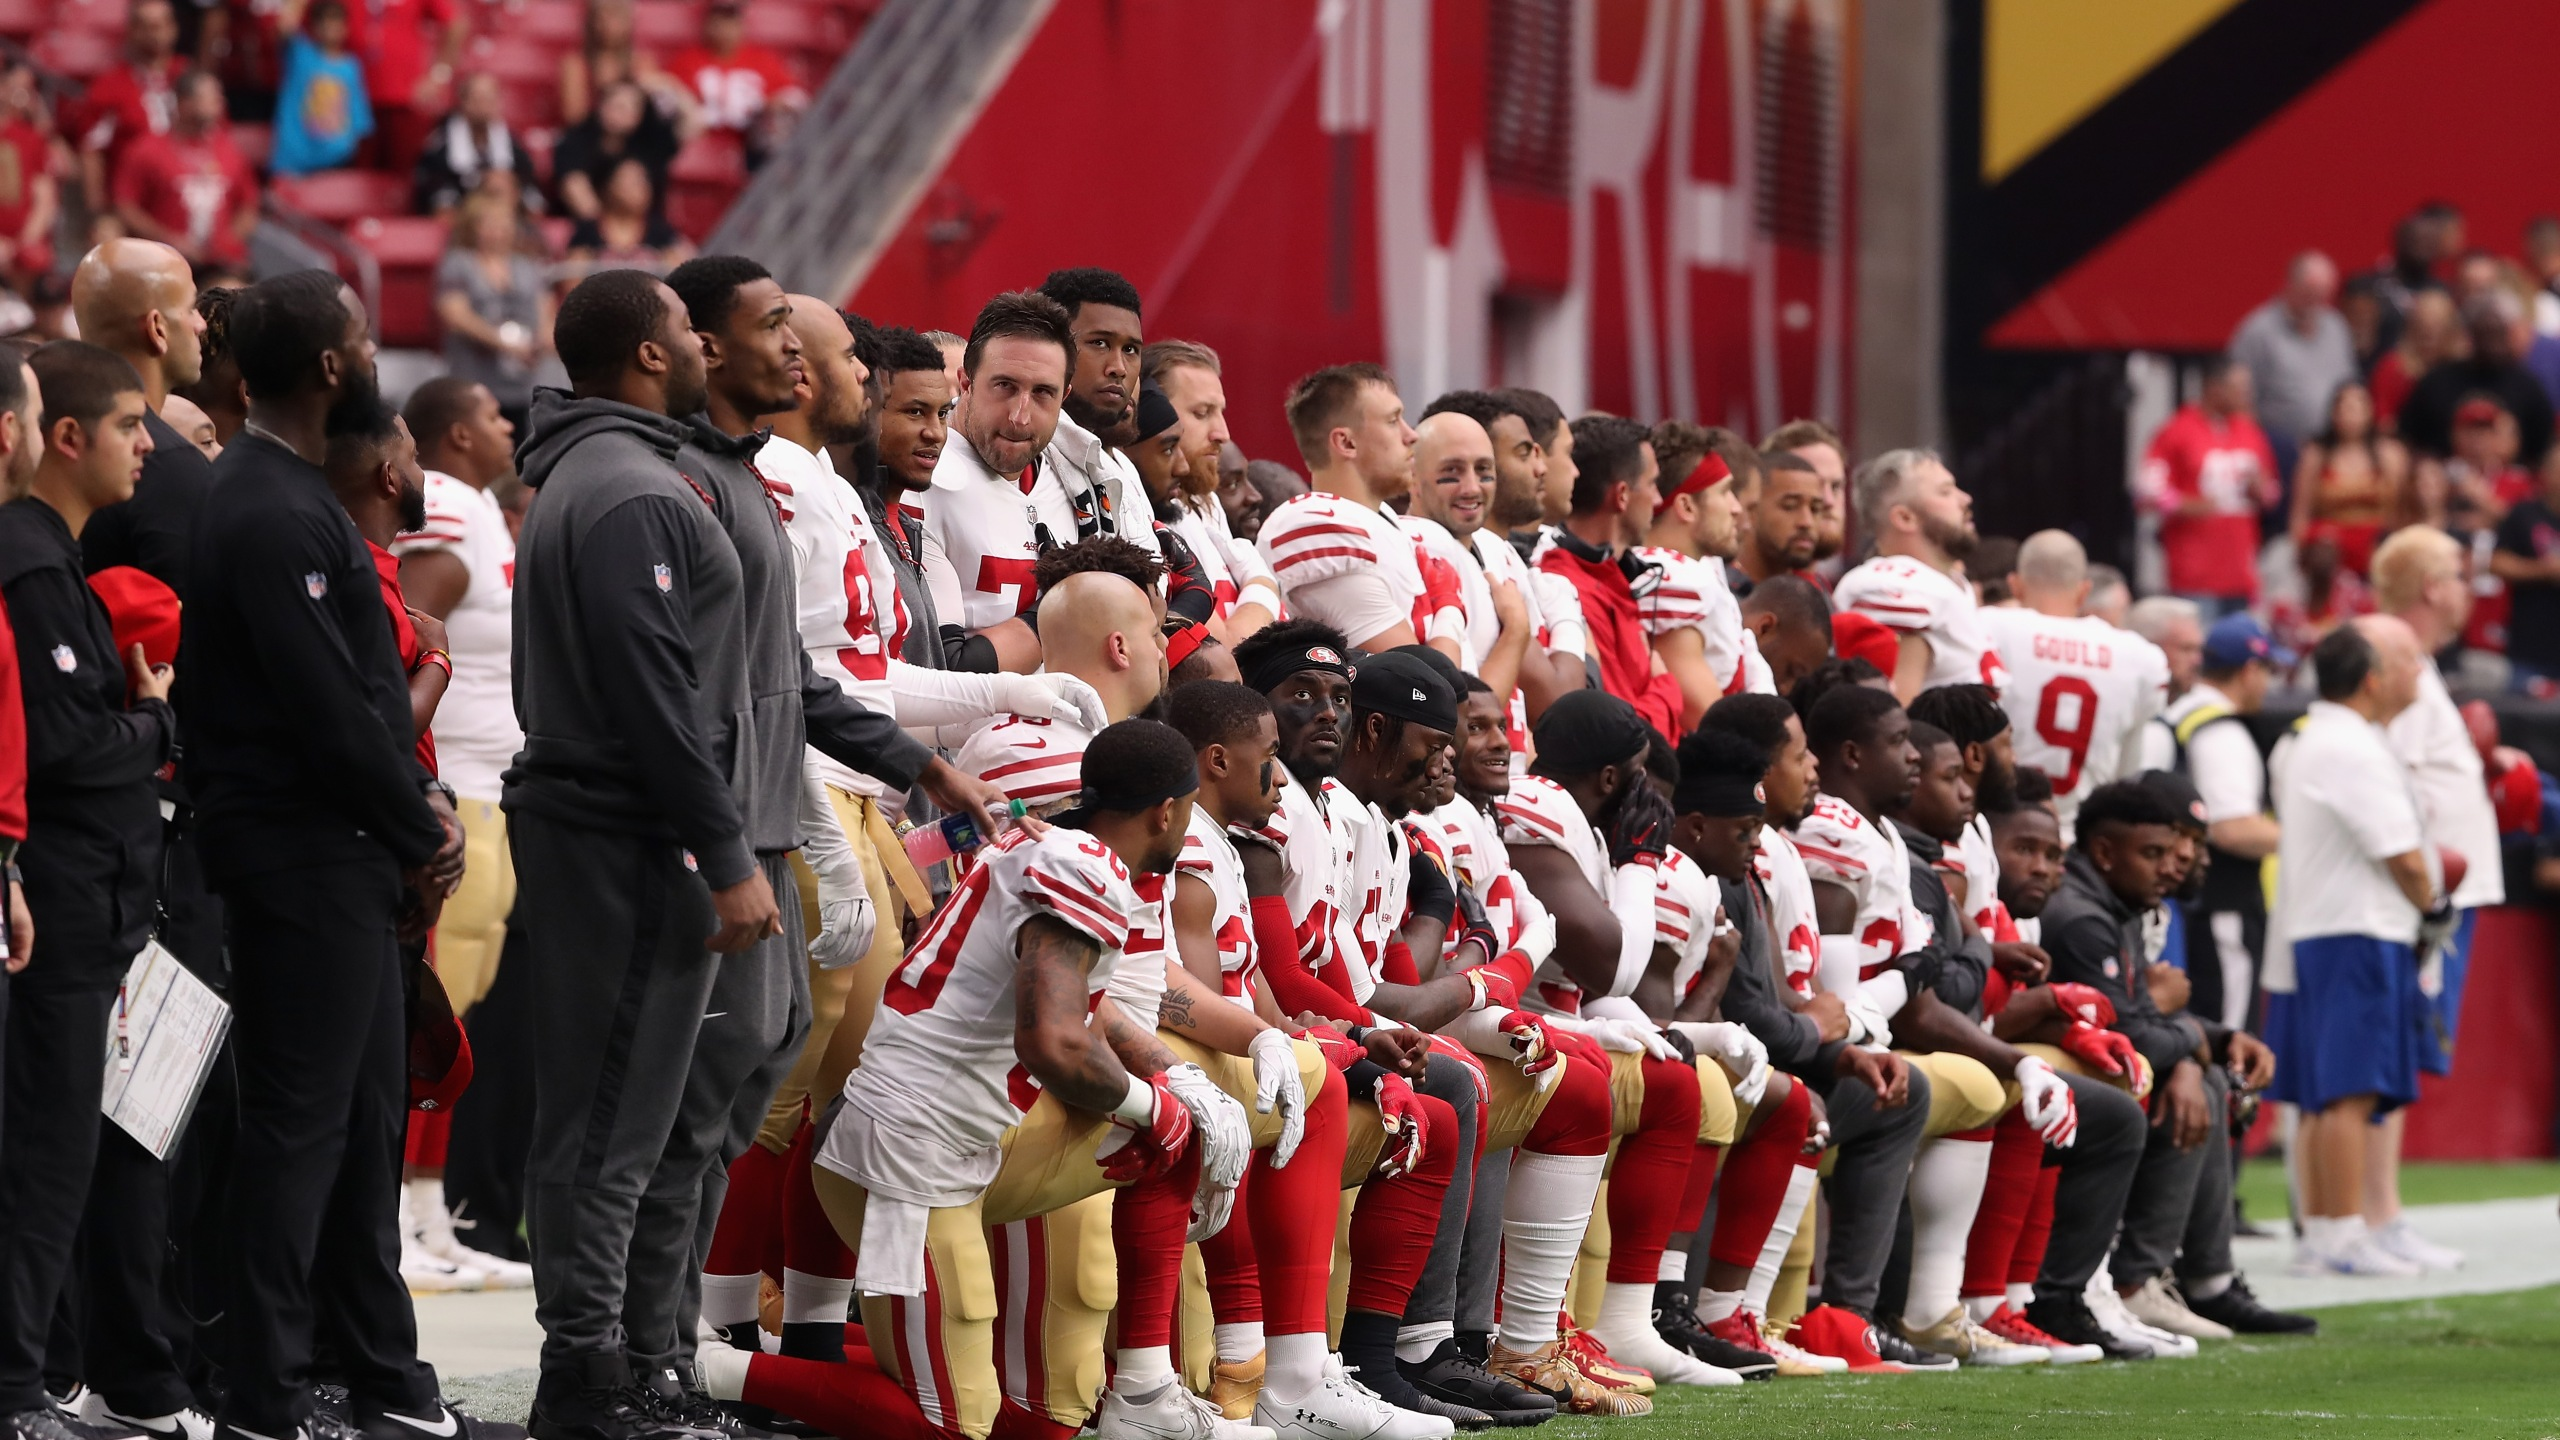 Members of the San Francisco 49ers kneel for the National Anthem before the start of the NFL game against the Arizona Cardinals at the University of Phoenix Stadium on Oct. 1, 2017 in Glendale, Arizona. (Credit: Christian Petersen/Getty Images)